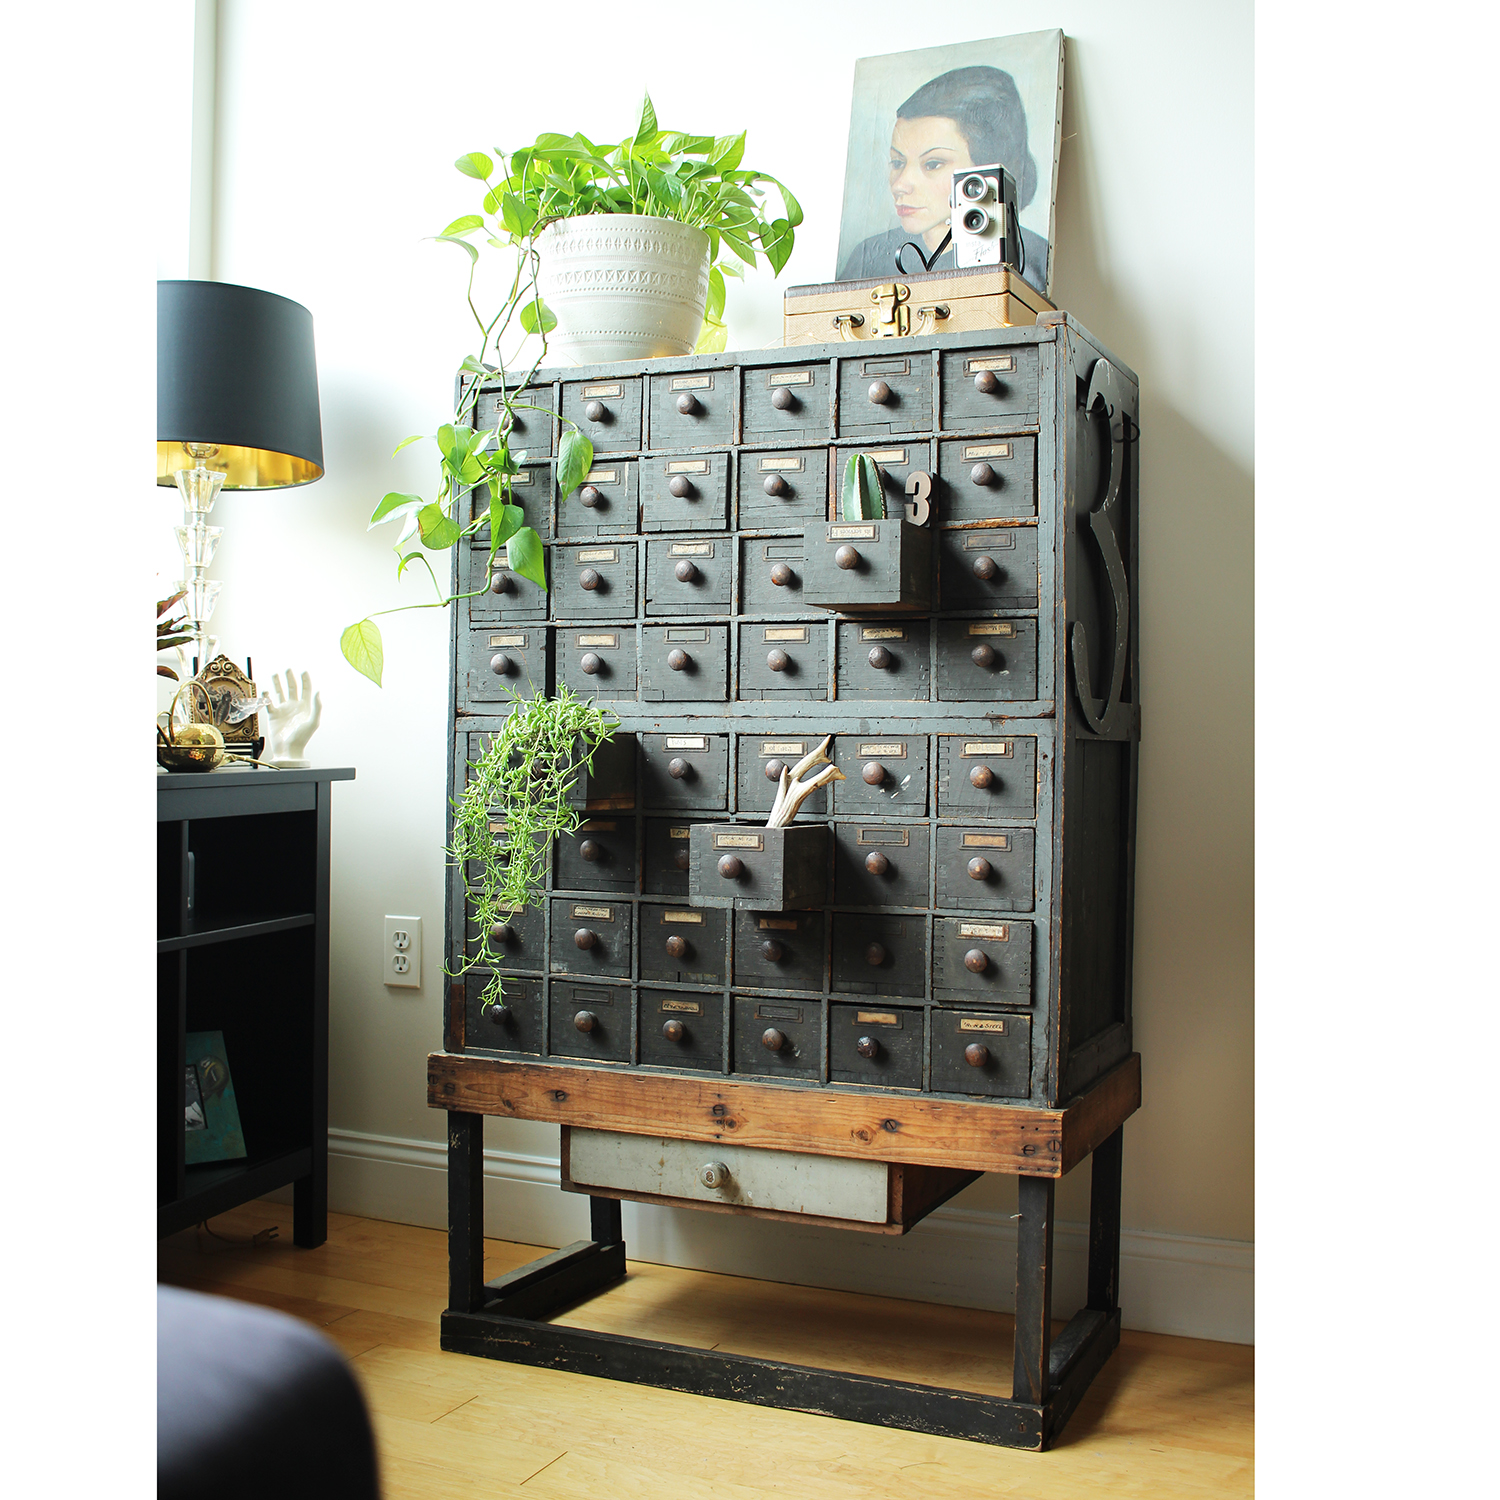 My Brimfield find ... a vintage cabinet of drawers made from WWII mortar shell boxes